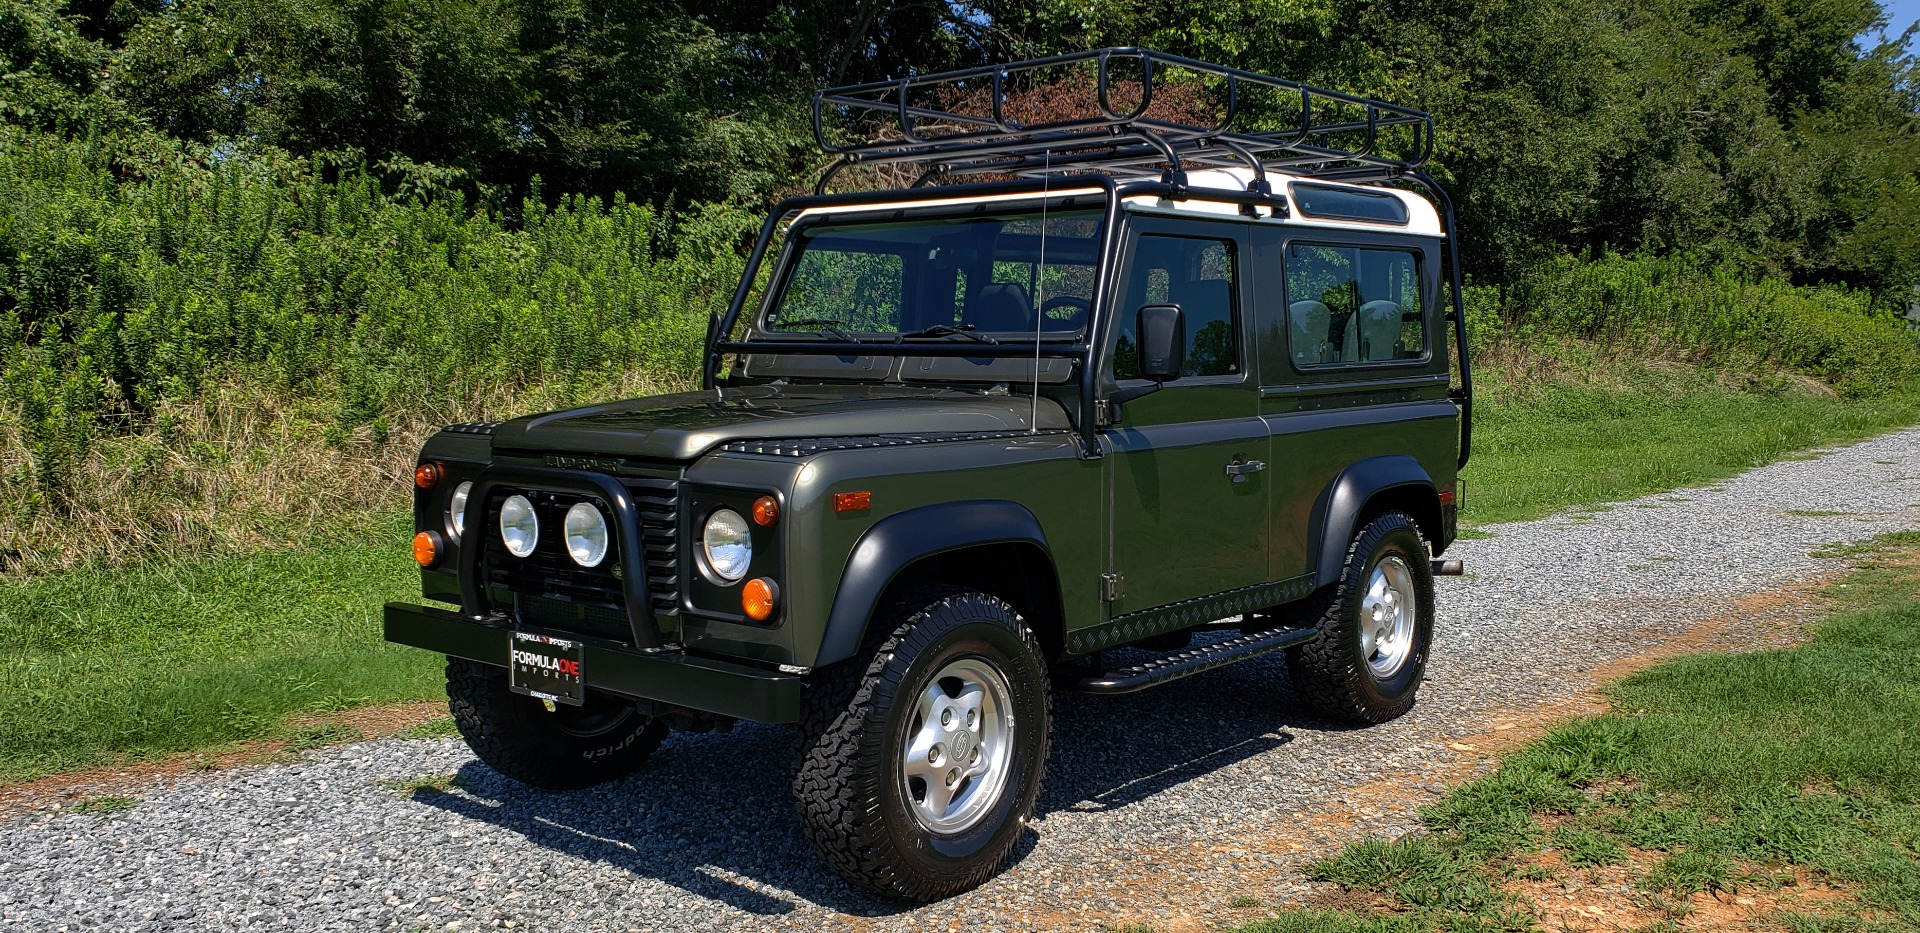 Used 1997 Land Rover DEFENDER 90 LIMITED EDITION / HARD-TOP / 4WD / FULLY RESTORED / LOW MILES for sale $119,000 at Formula Imports in Charlotte NC 28227 2